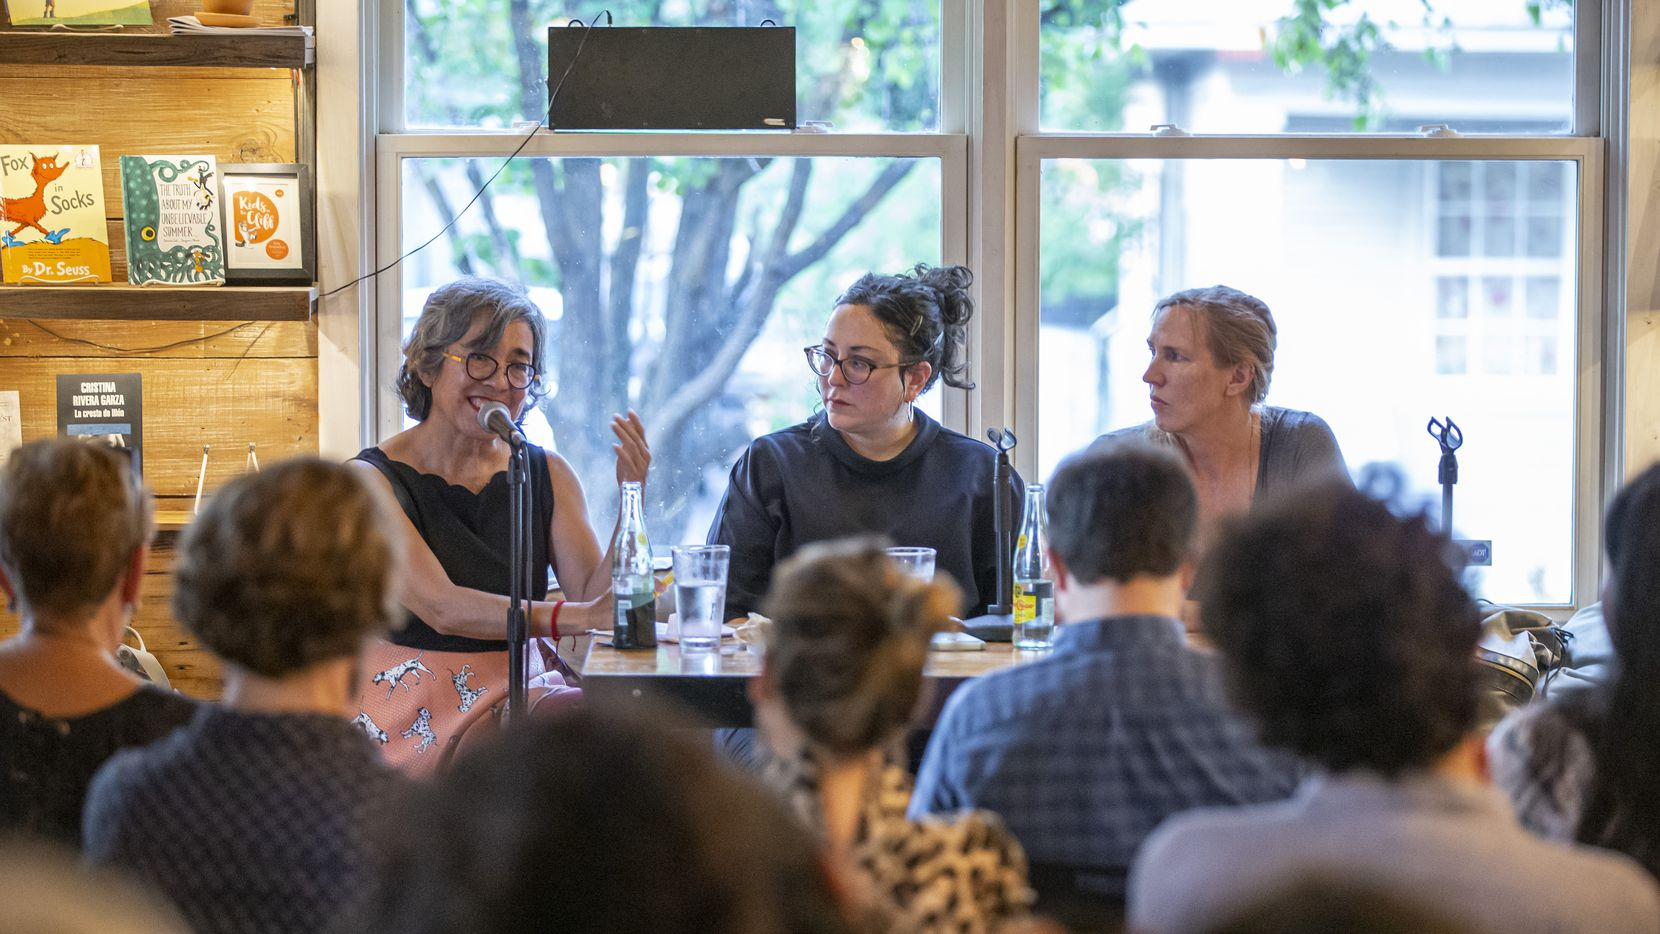 Attendees listen as authors Cristina Rivera Garza, left, Leni Zumas, center, and Miriam Toews speak at the Wild Detectives on Sept. 7, 2019 for the Hay Forum's second Dallas event. The third forum in 2020 will be virtual.